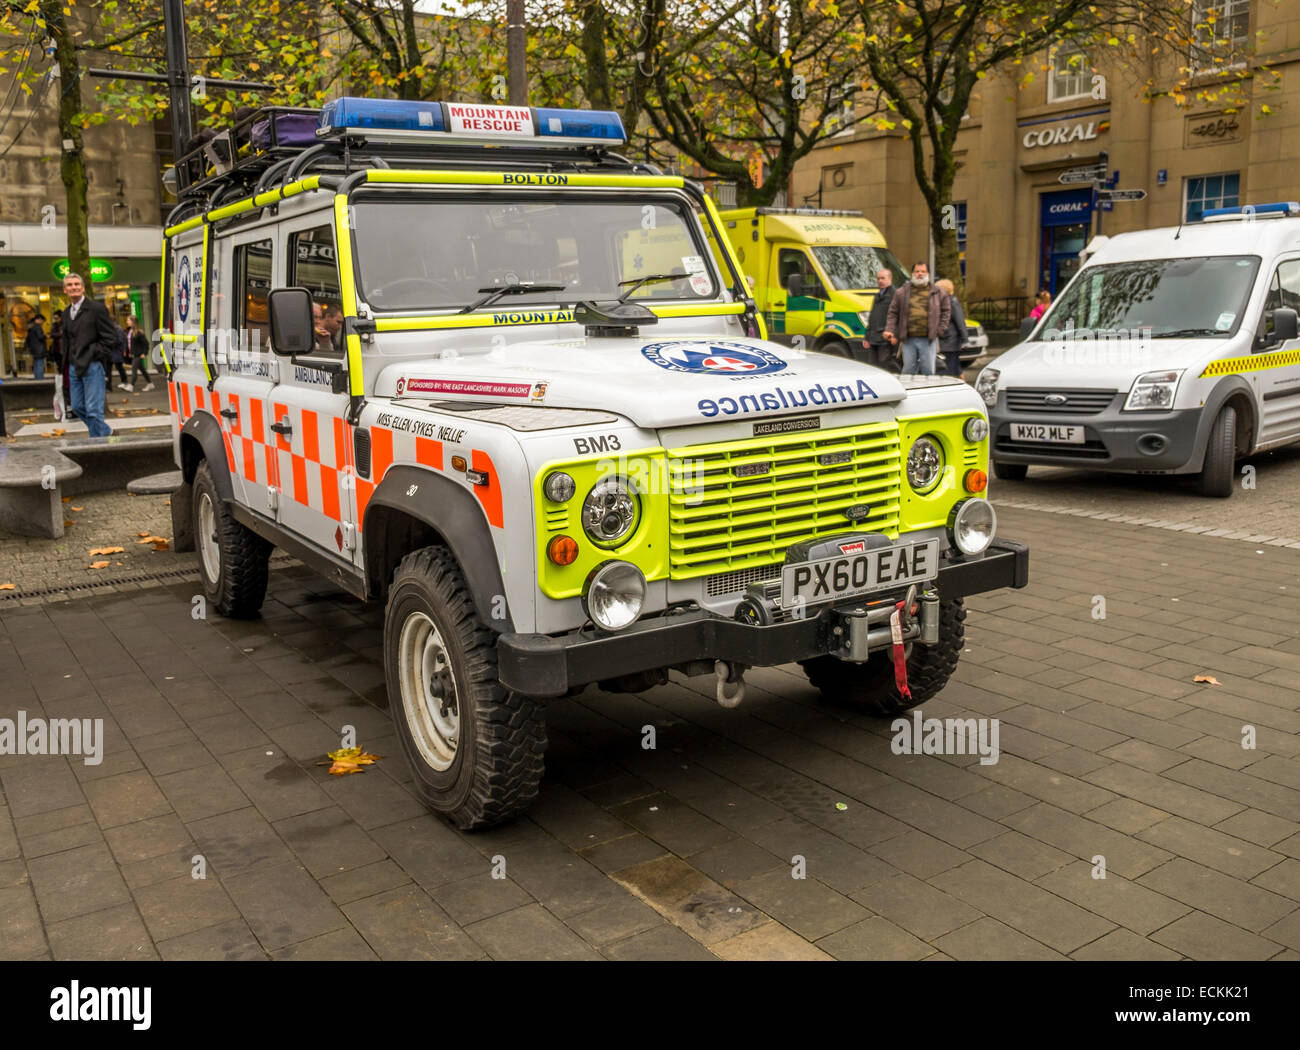 Emergency Mountain Rescue Ambulance parked up in the middle of Bolton town centre. - Stock Image